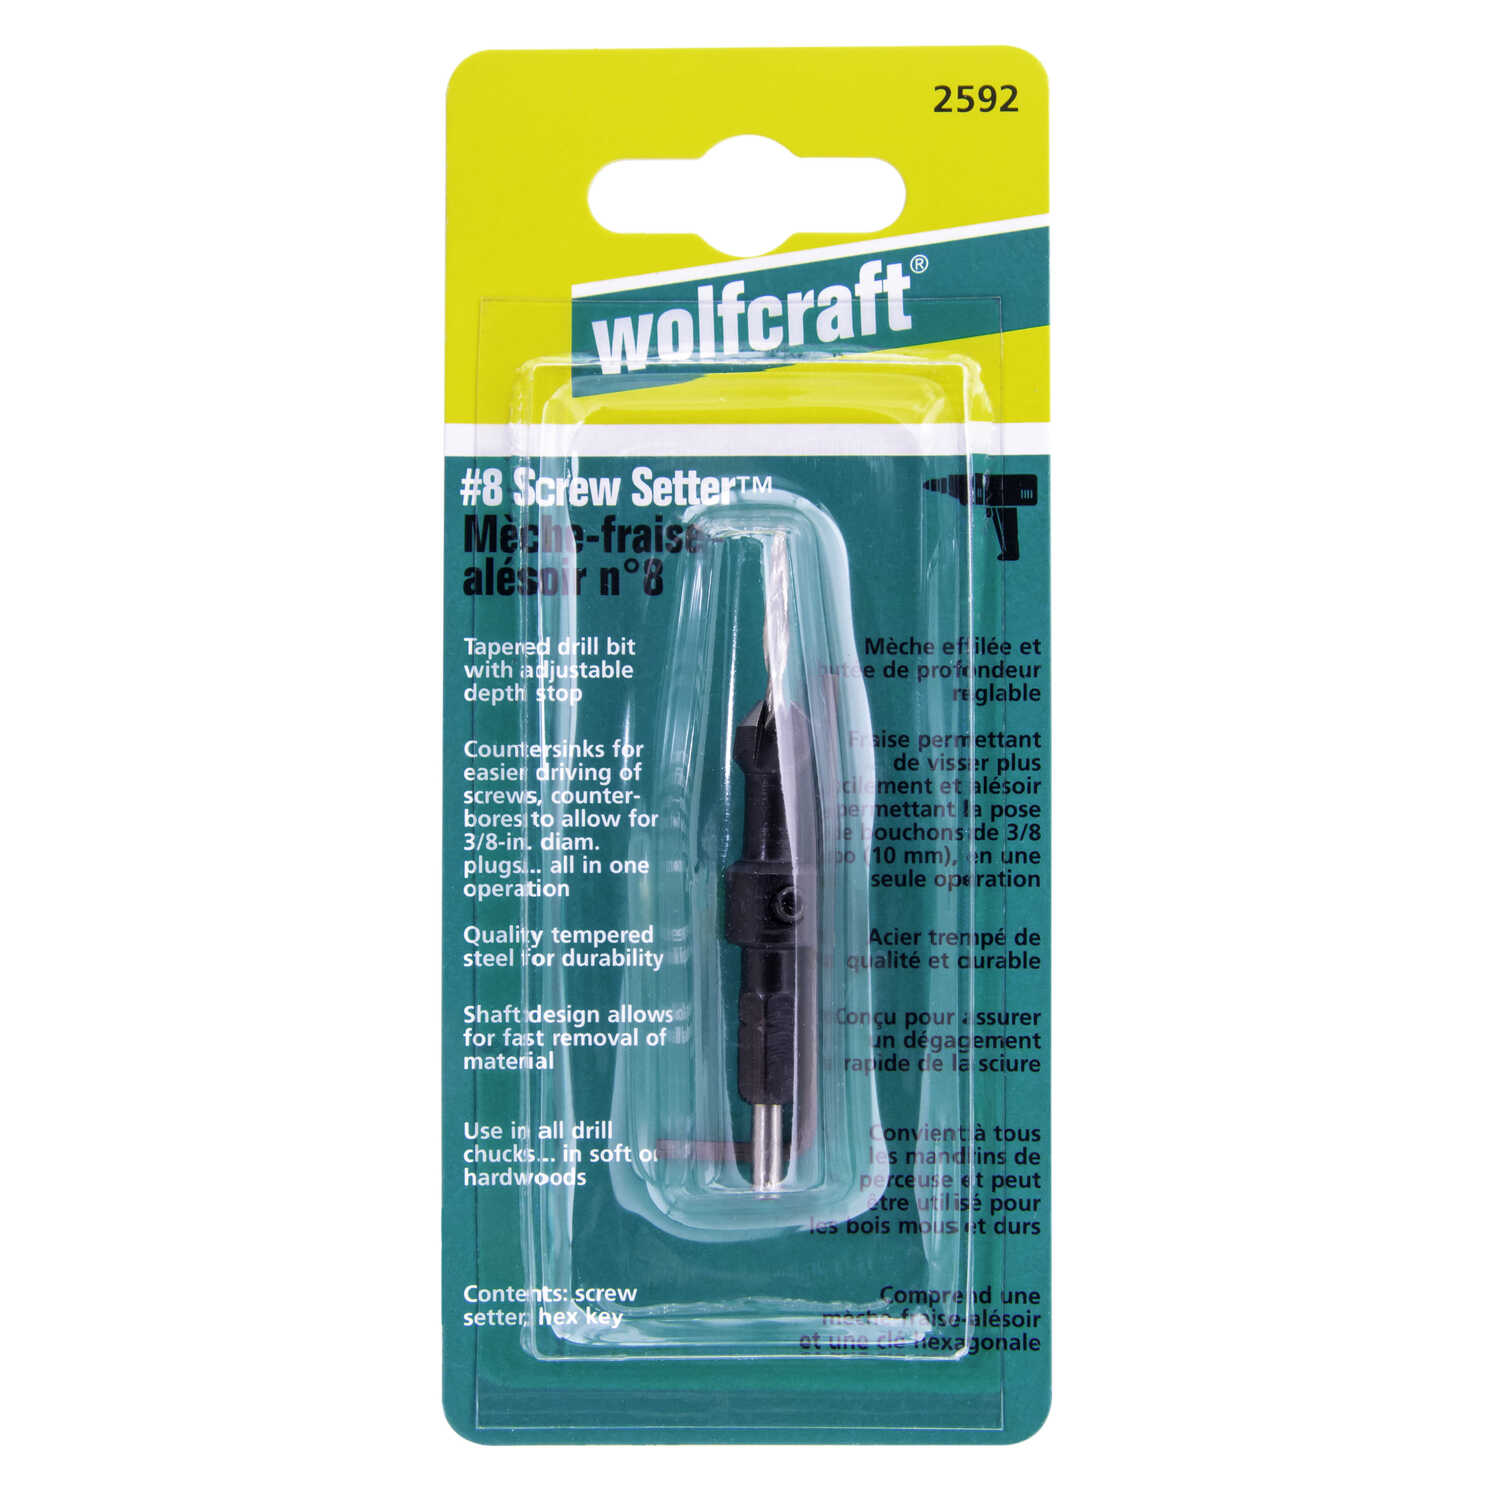 Wolfcraft  3.5 mm Dia. Tapered  Screw Setter  1/4 in. Hex Shank  1 pc. Steel